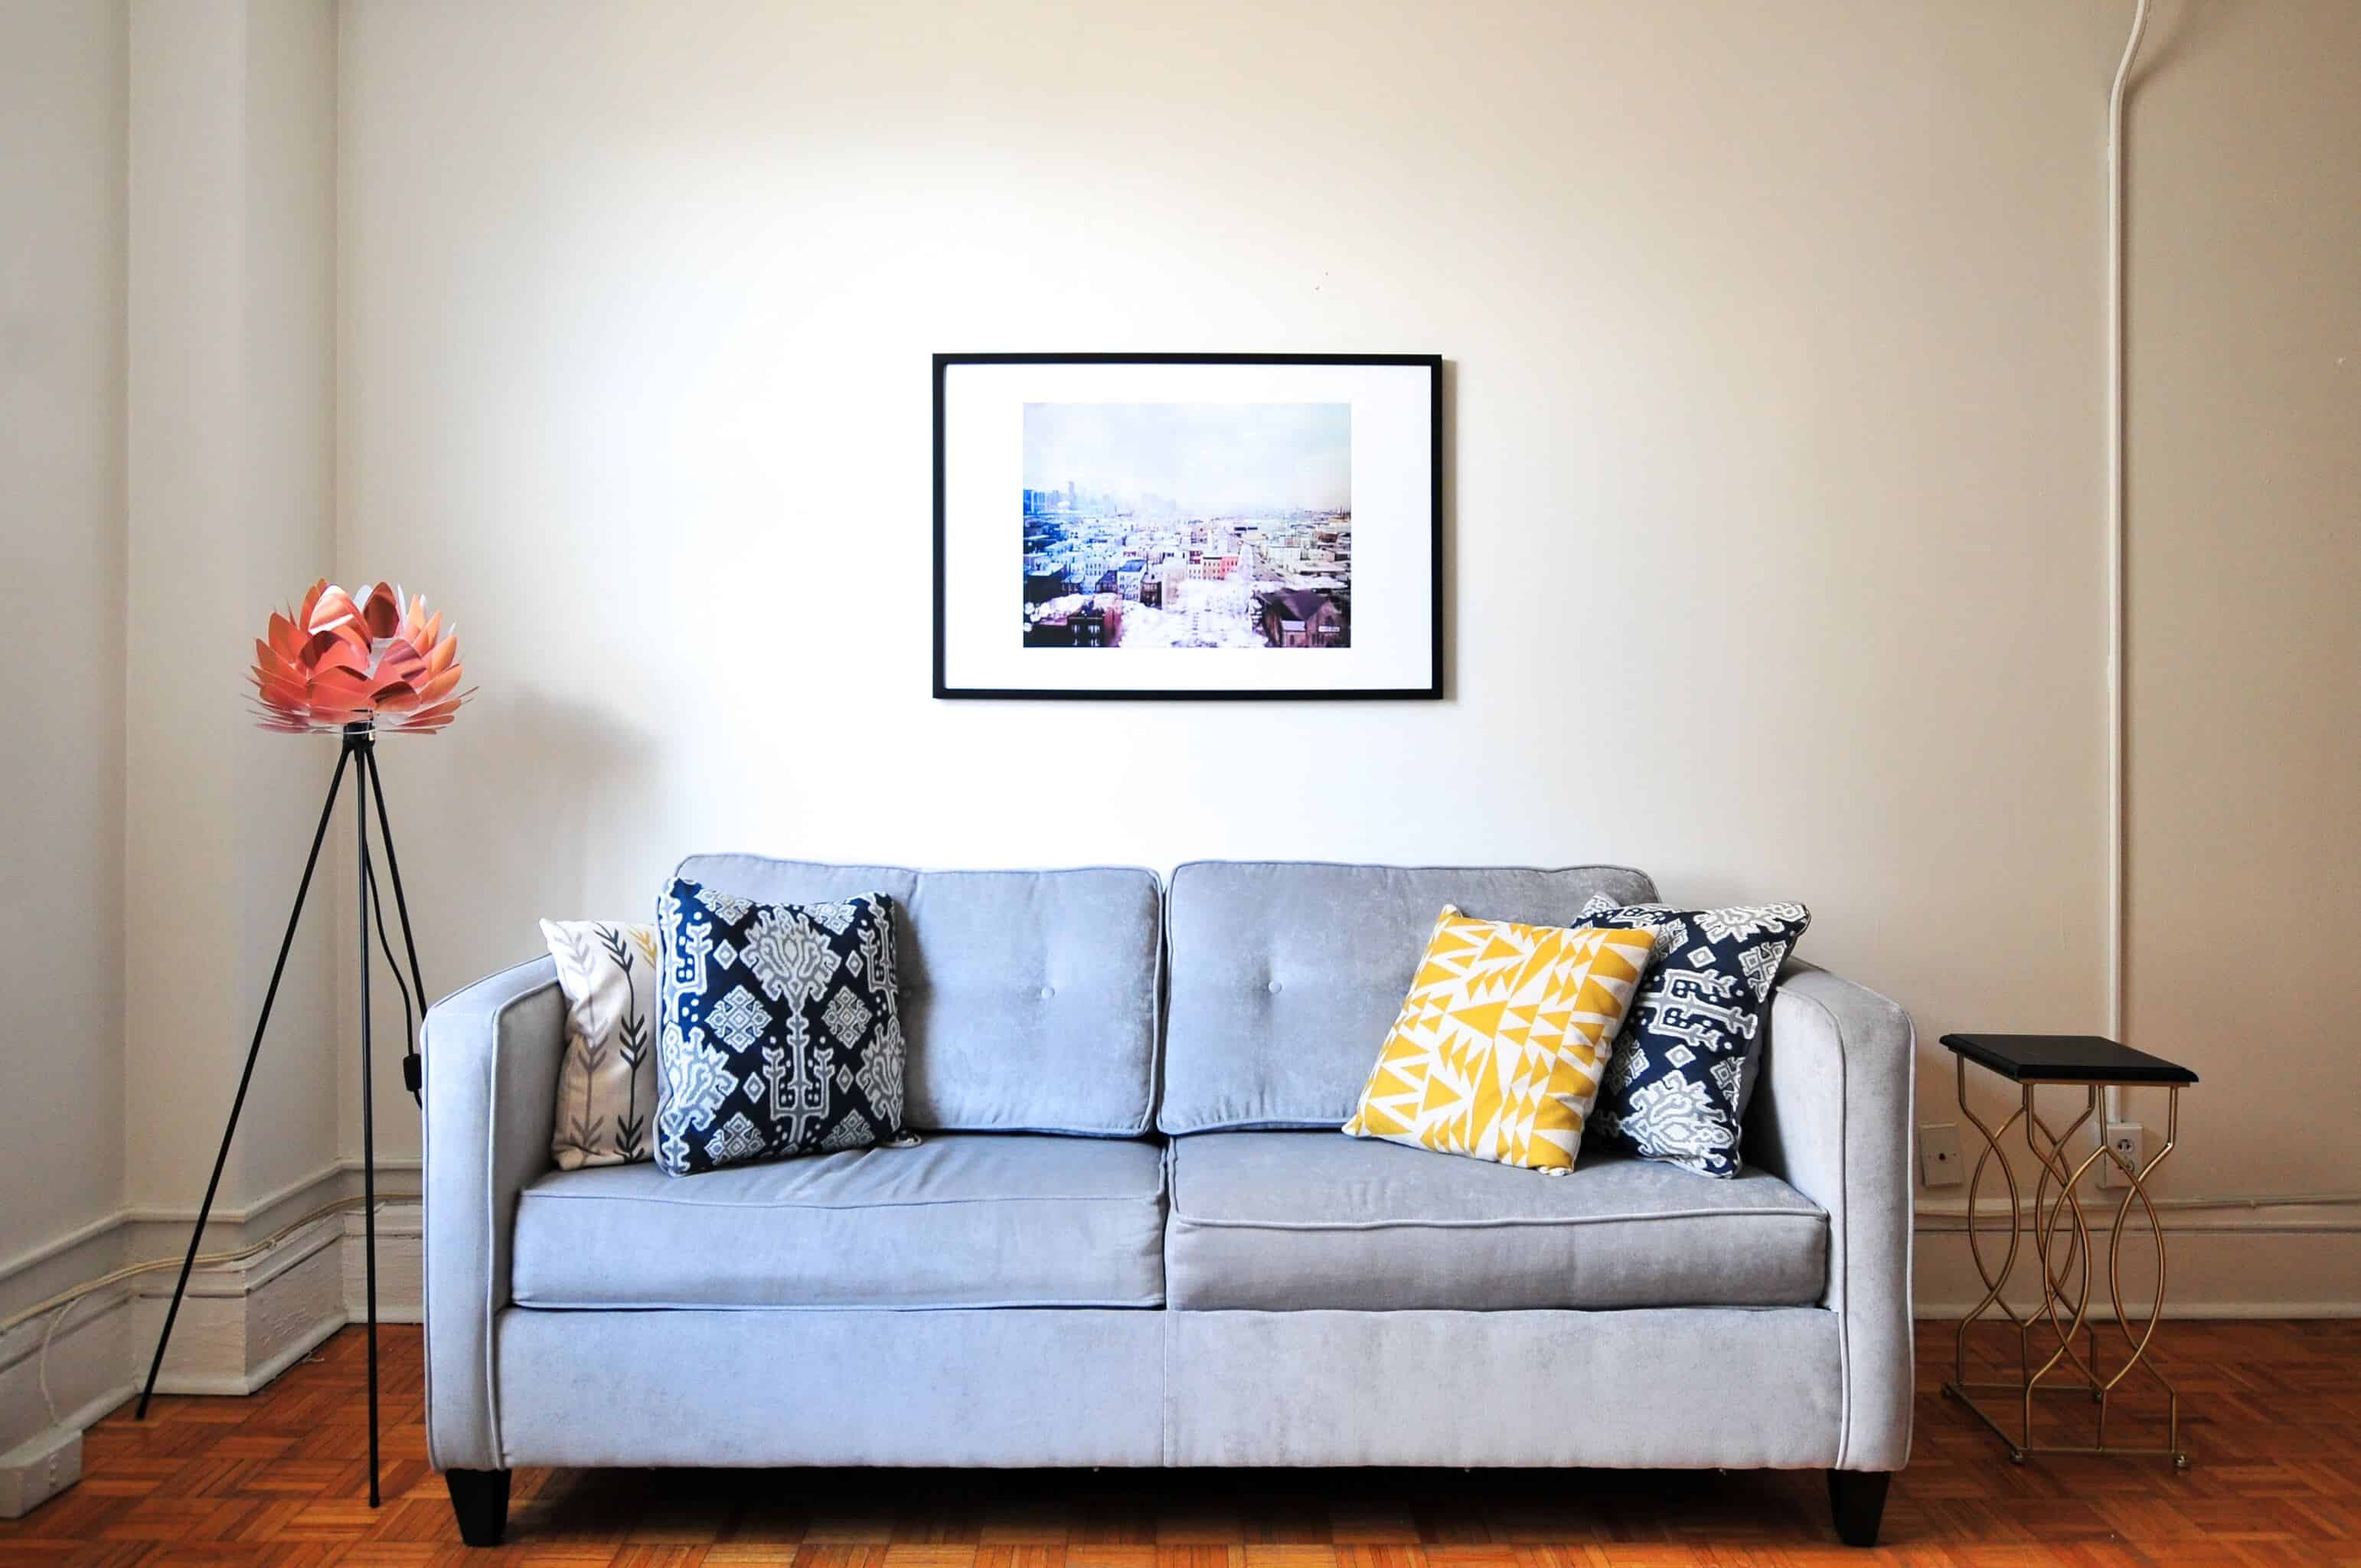 artwork placed above couch